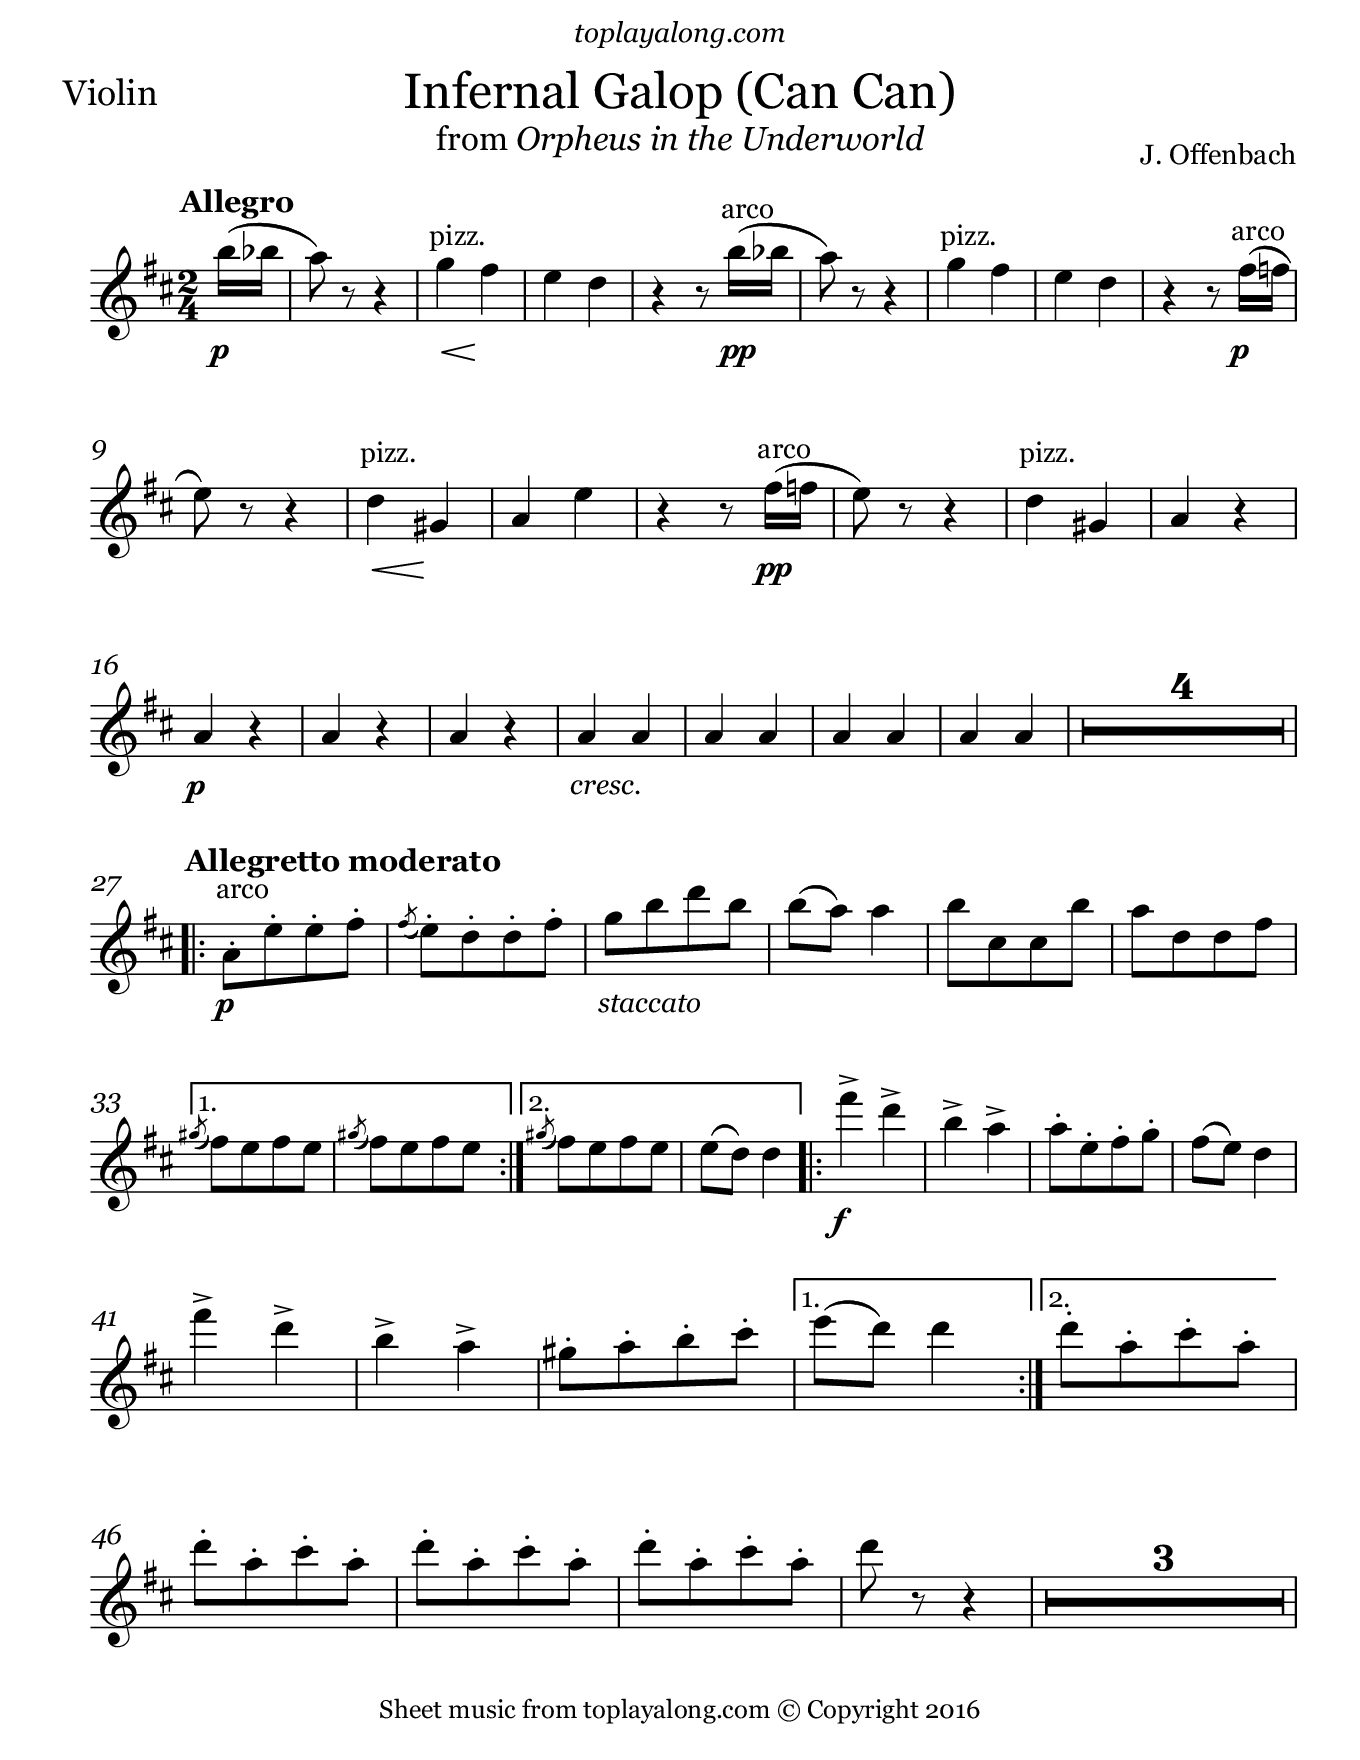 Infernal Galop (Can Can) from Orpheus by Offenbach. Sheet music for Violin, page 1.